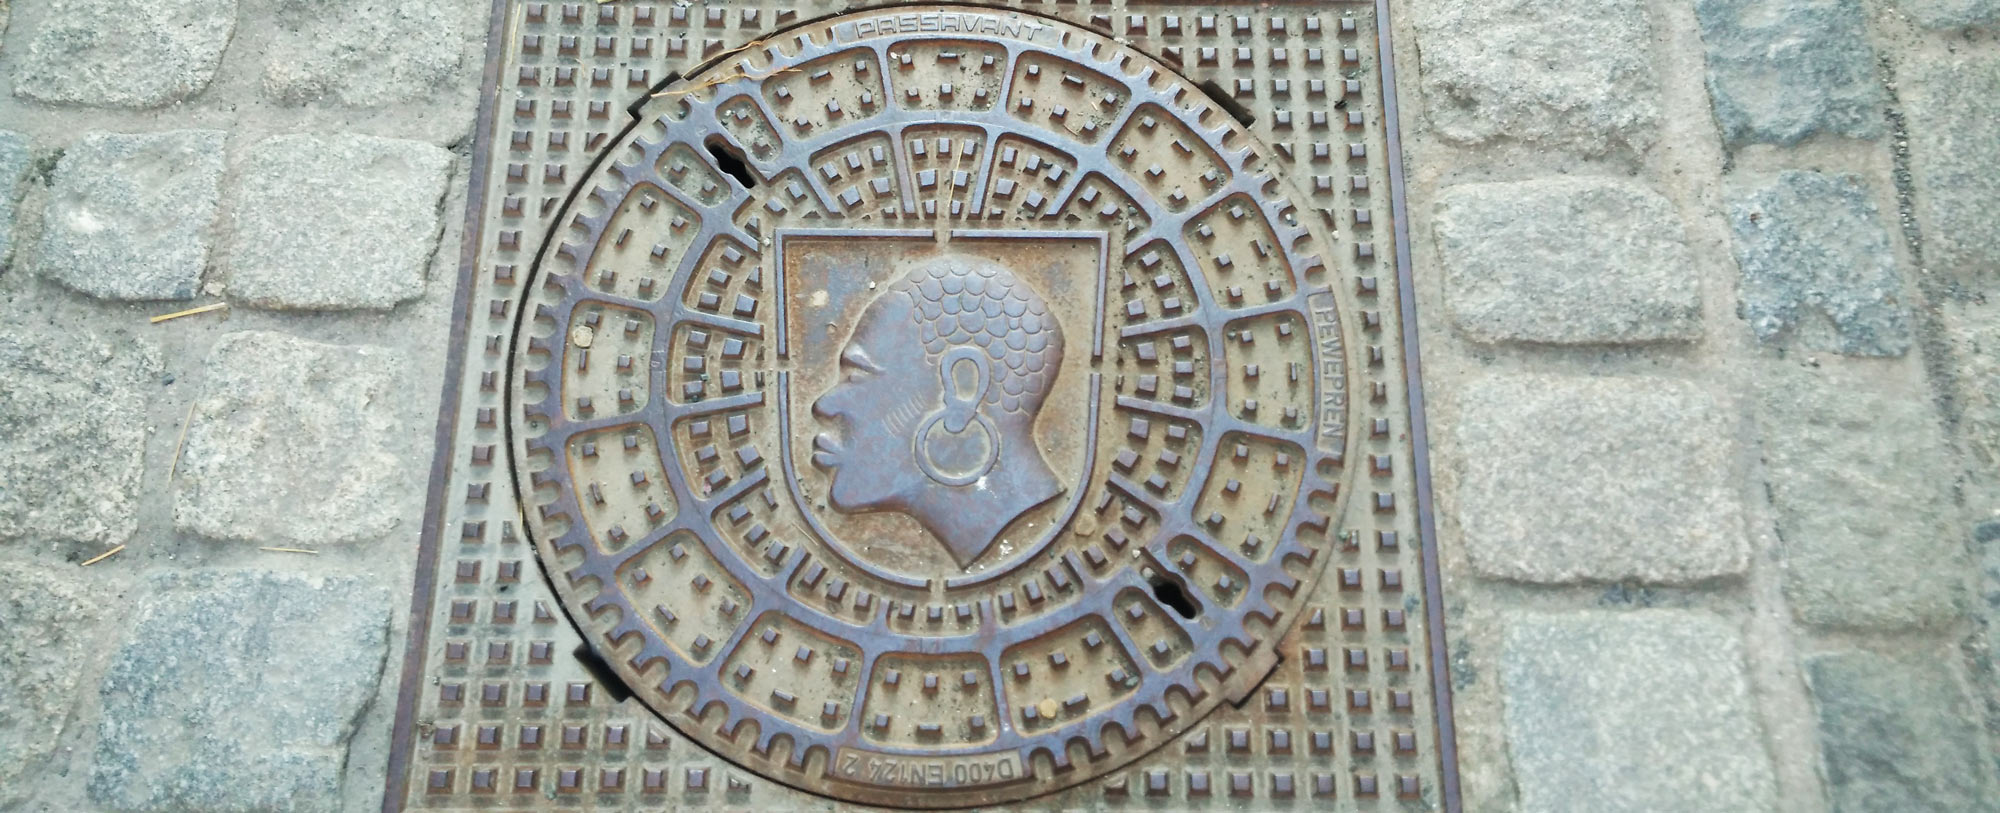 Gullydeckel mit Coburgs Schutzapatron, dem heiligen Mauritius; gully cover with Saint Maurice portrait as a blackamoor